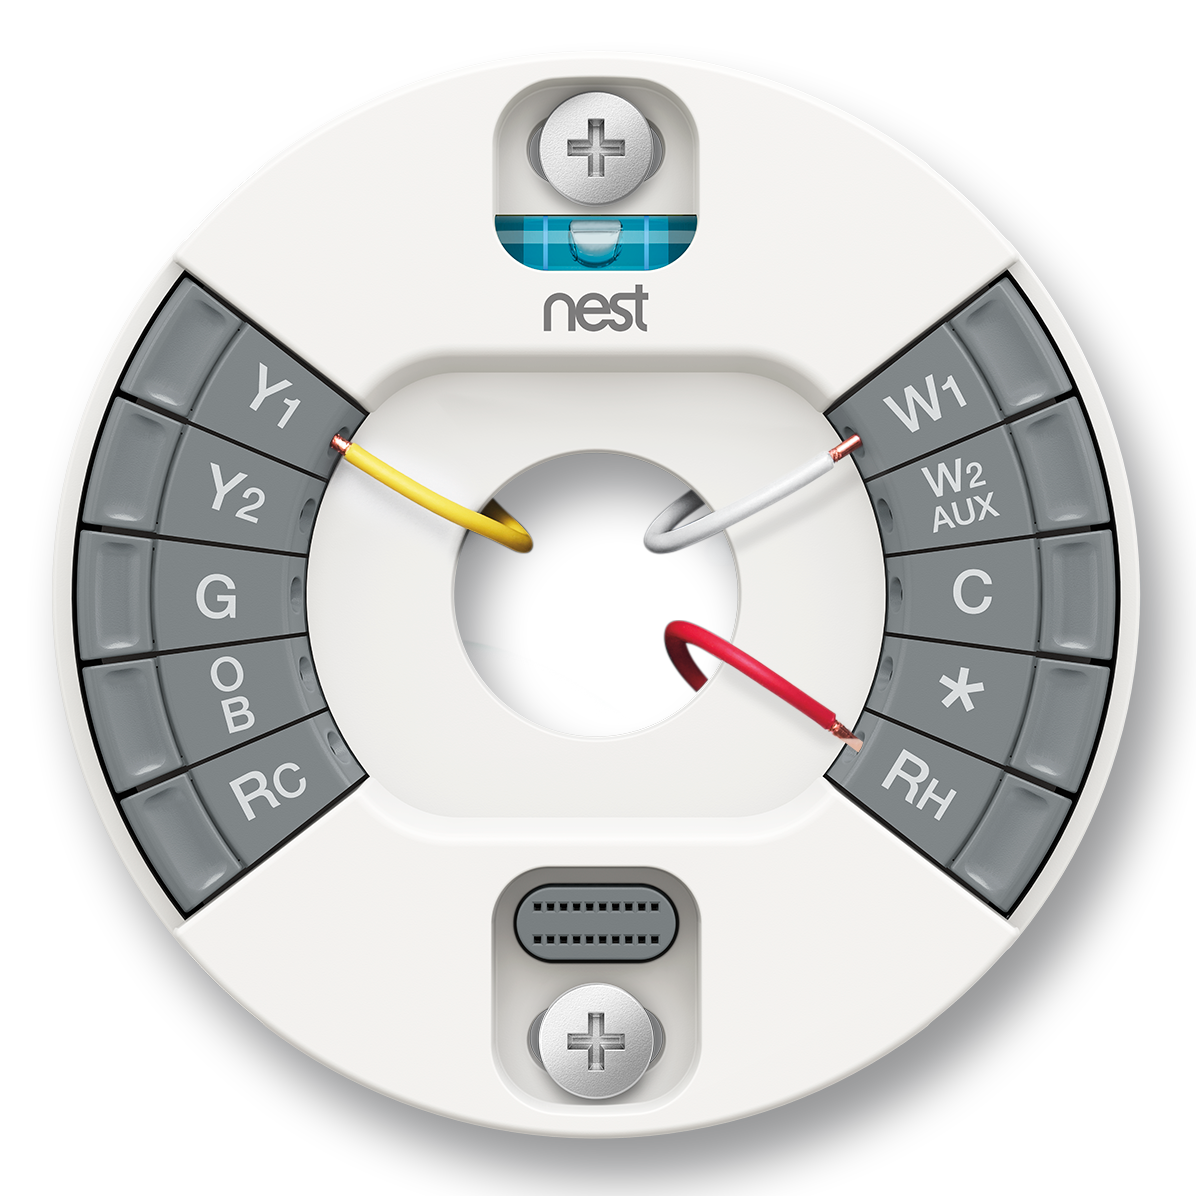 nest base 3 wire troubleshooting nest thermostat power errors when it gets cold outside nest wiring diagram 4 wire at gsmx.co